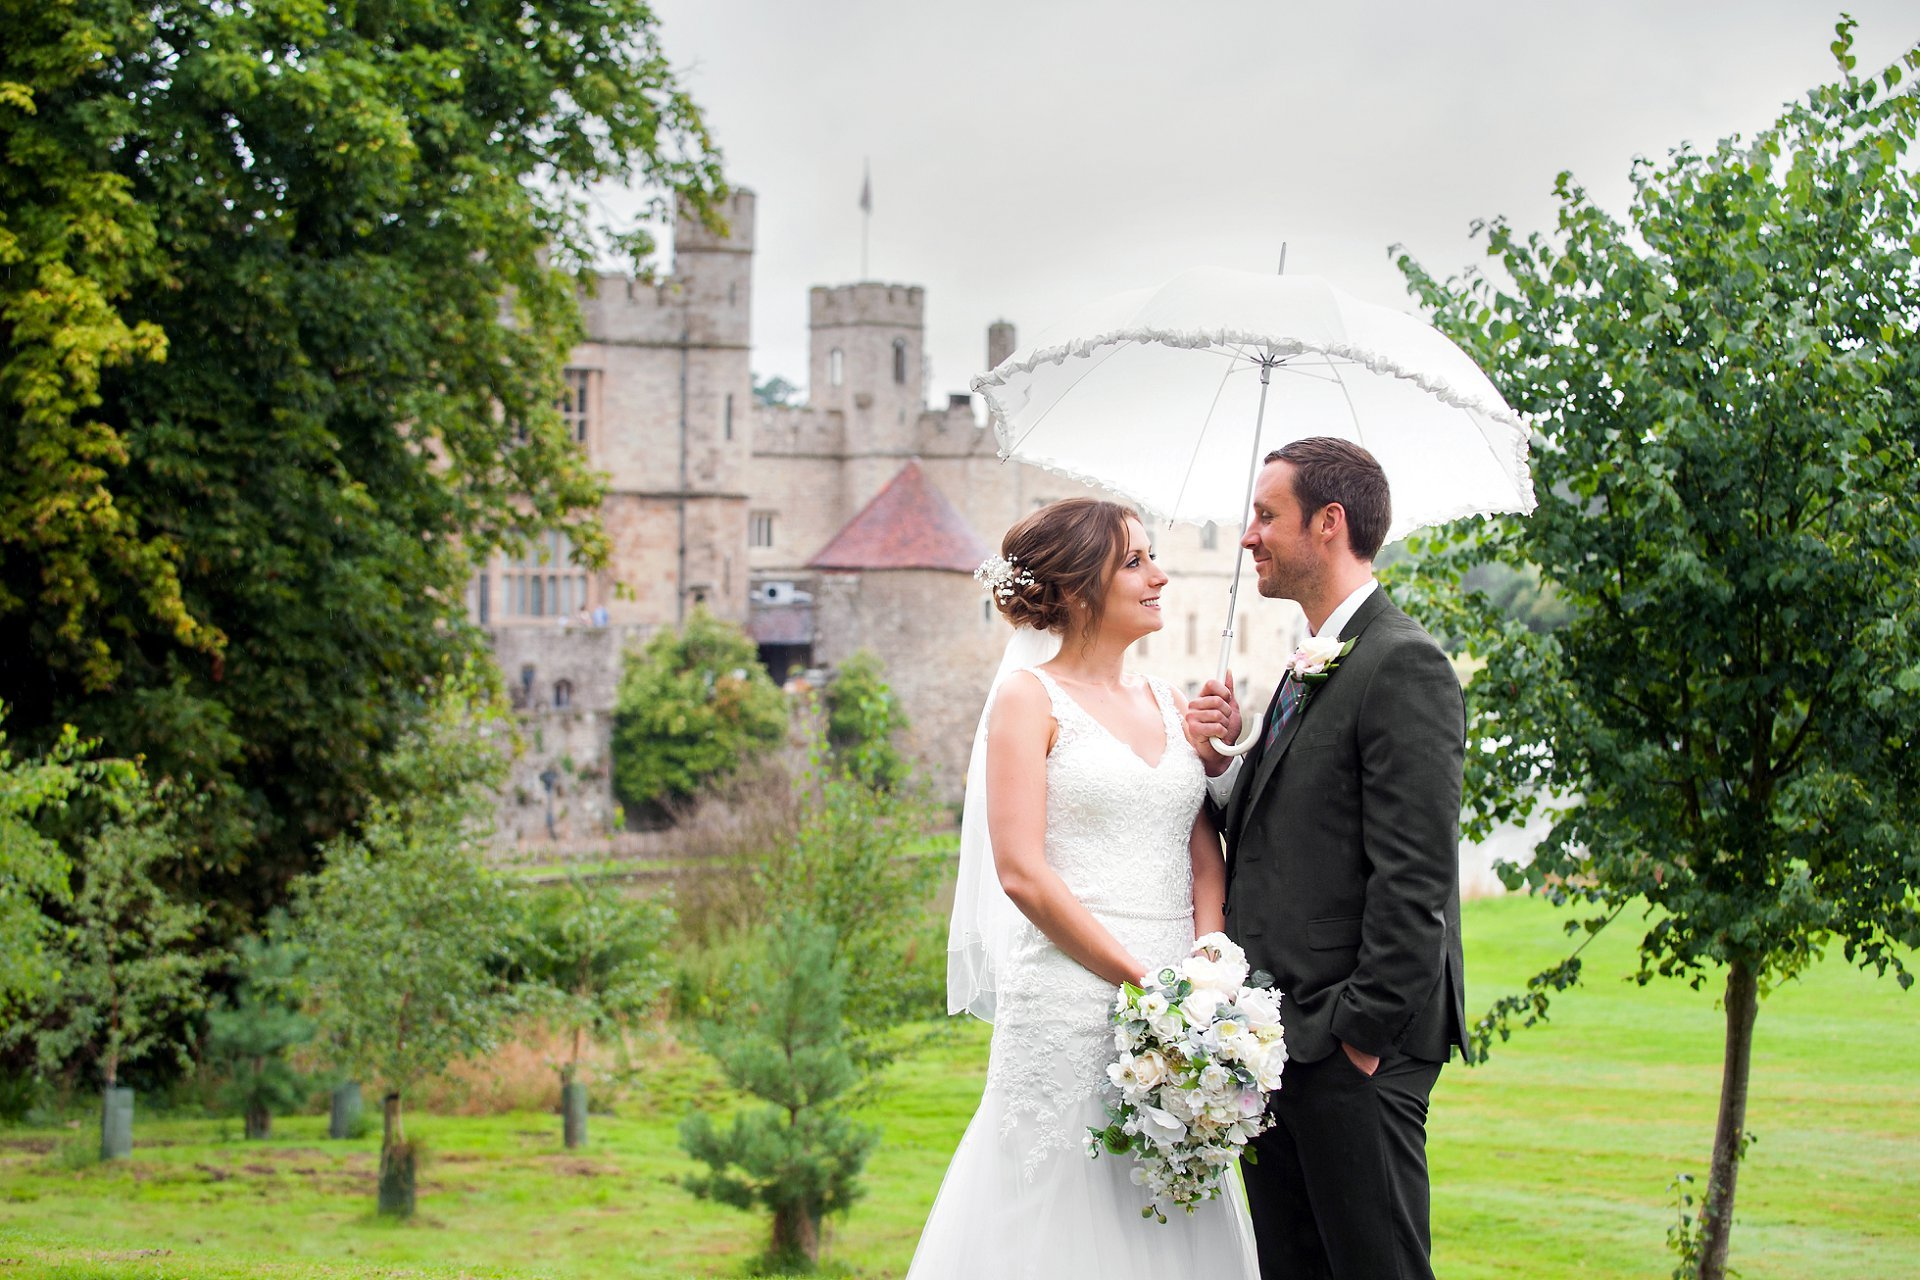 Castle wedding photographer Emma Duggan is a Kent wedding specialist for small one, two and three hour weddings - here a bride and groom in front of Leeds Castle during their rainy summer wedding